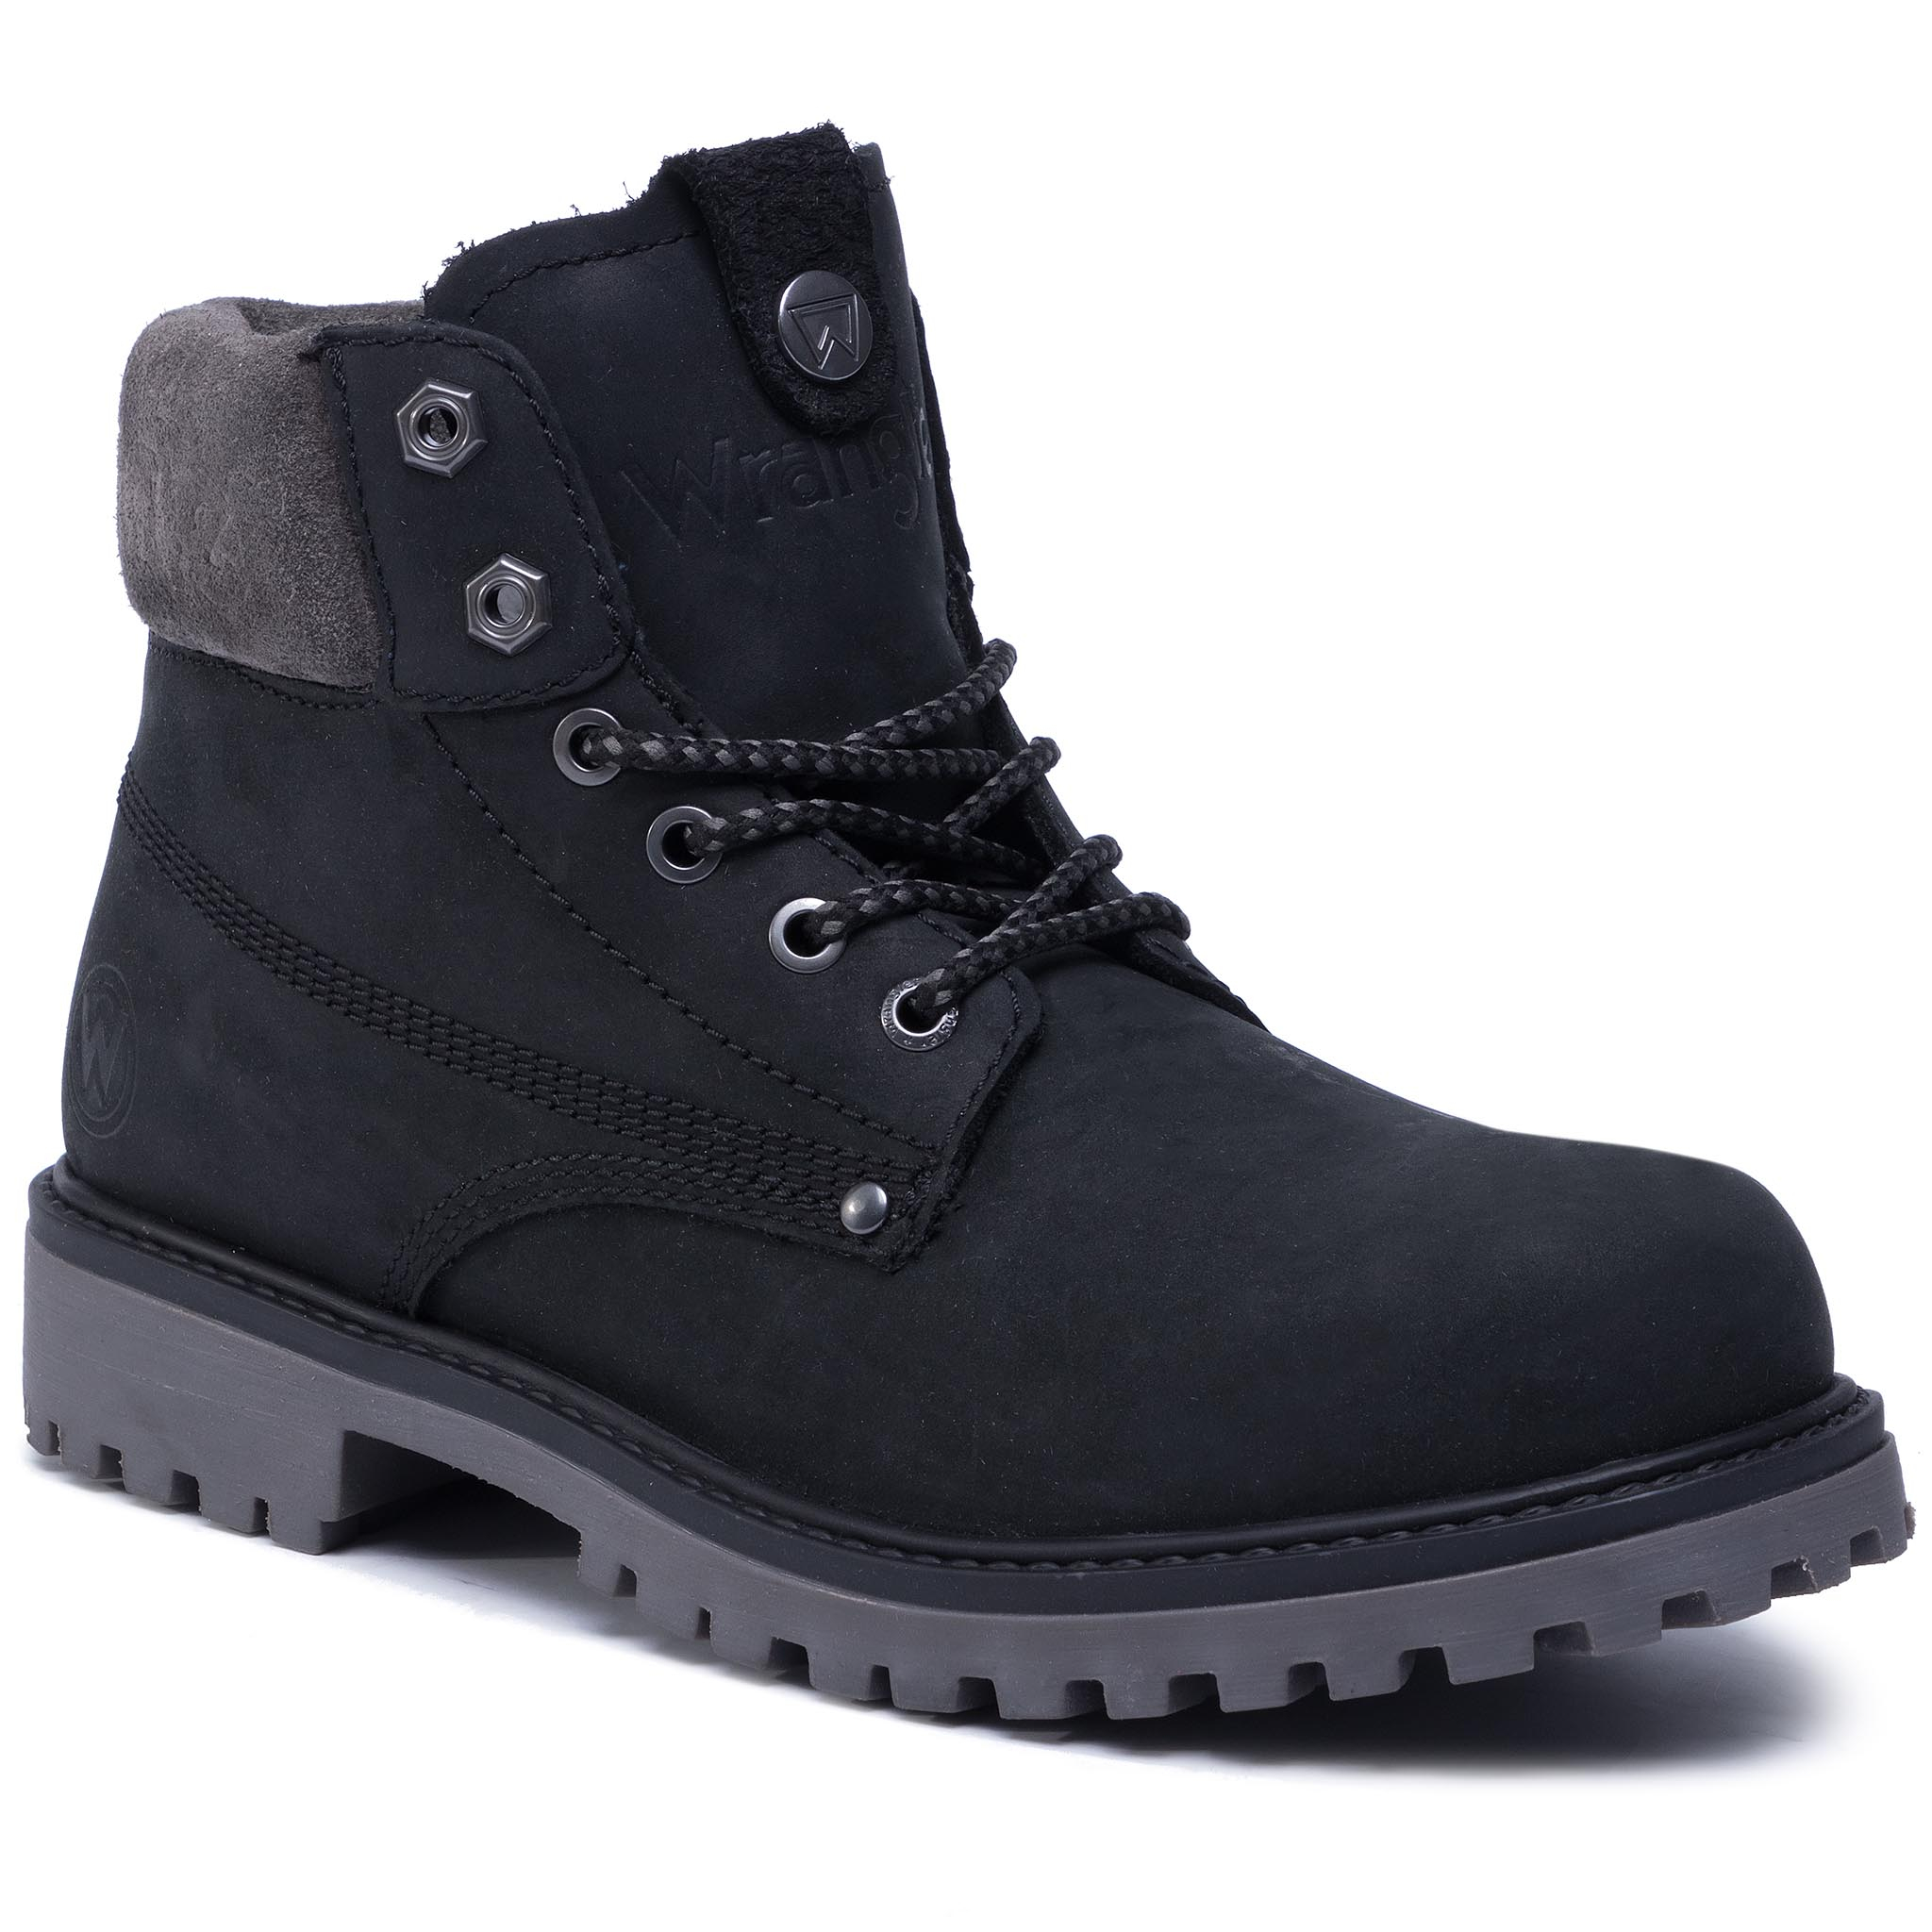 Trappers WRANGLER - Arch WM92011A Black 62